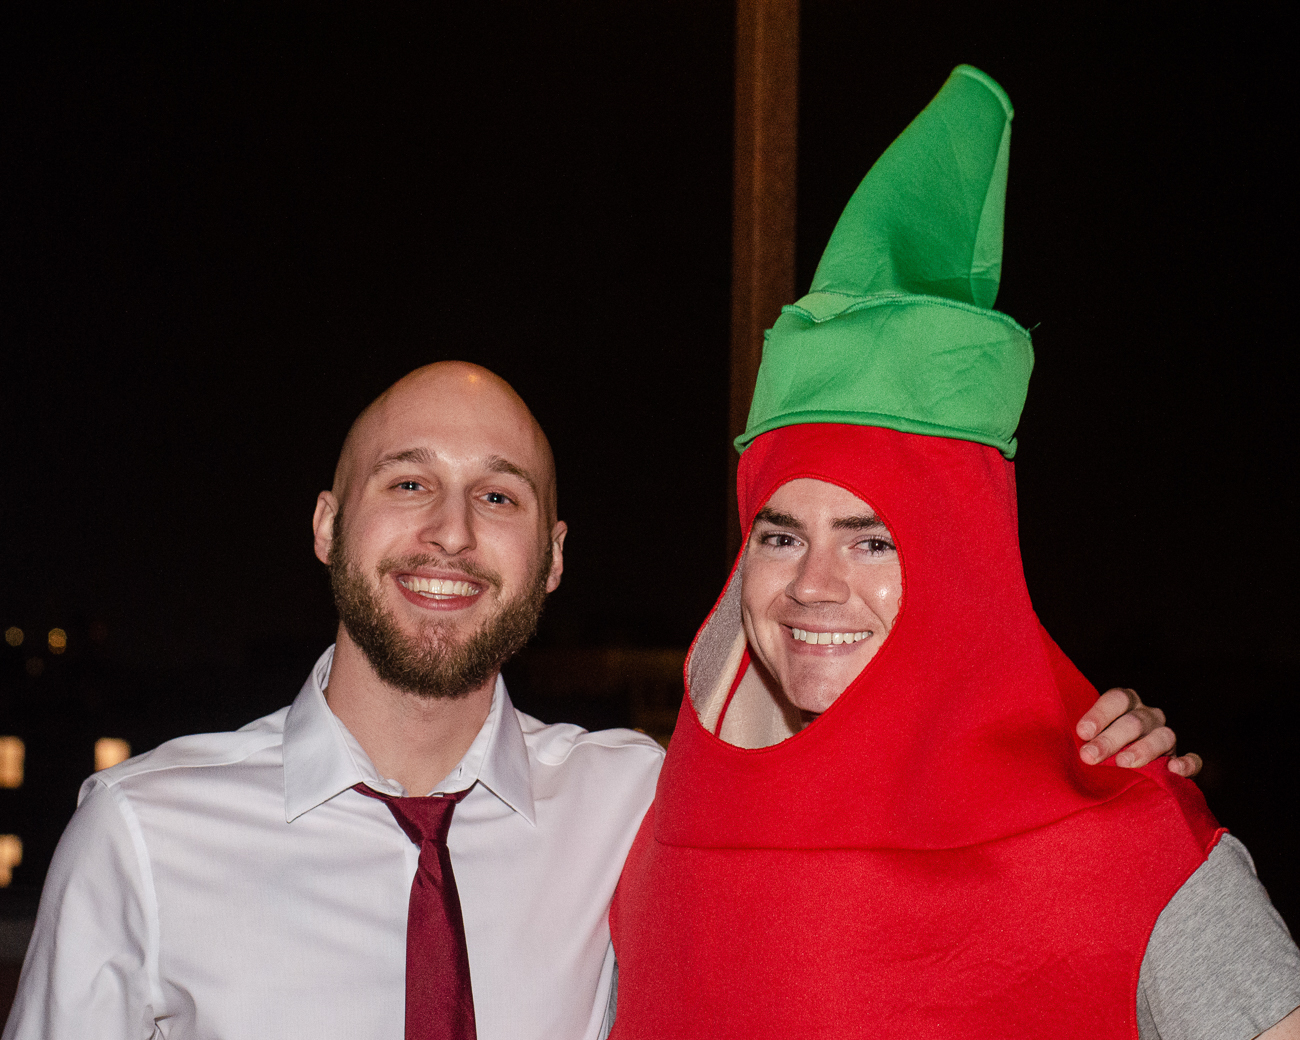 Garrett Souders as a Hitman and Dan Kurtis as Siracha / Image: Kellie Coleman // Published: 10.27.19